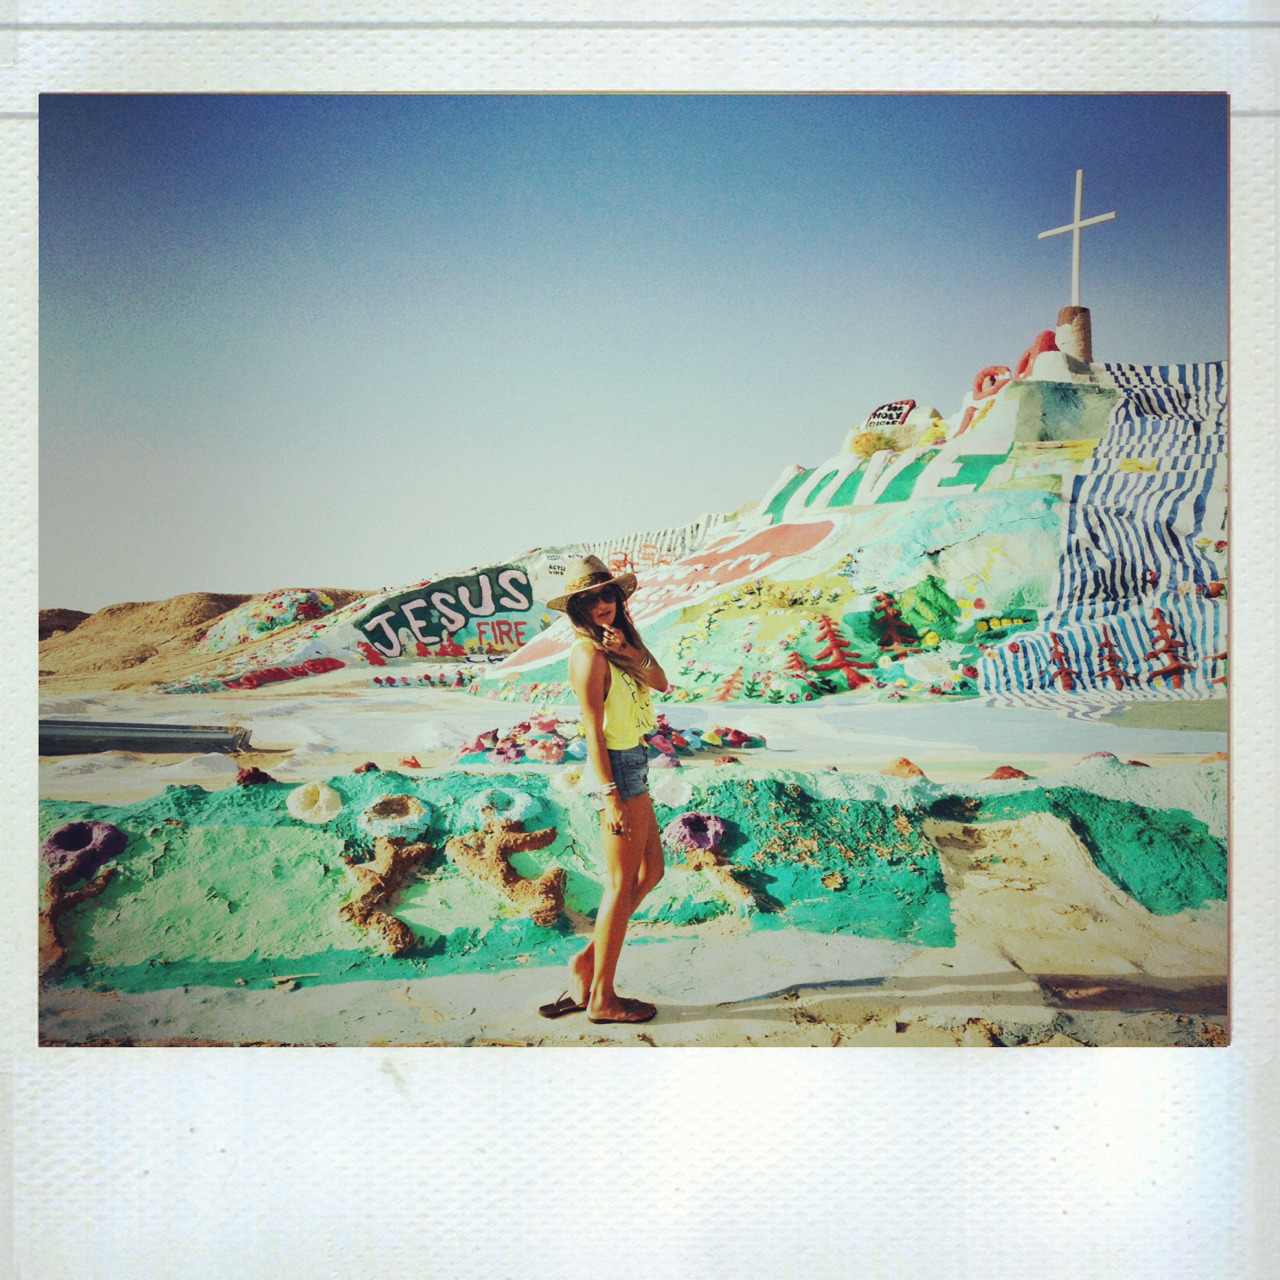 En route to NYC. First stop, Salvation Mountain!